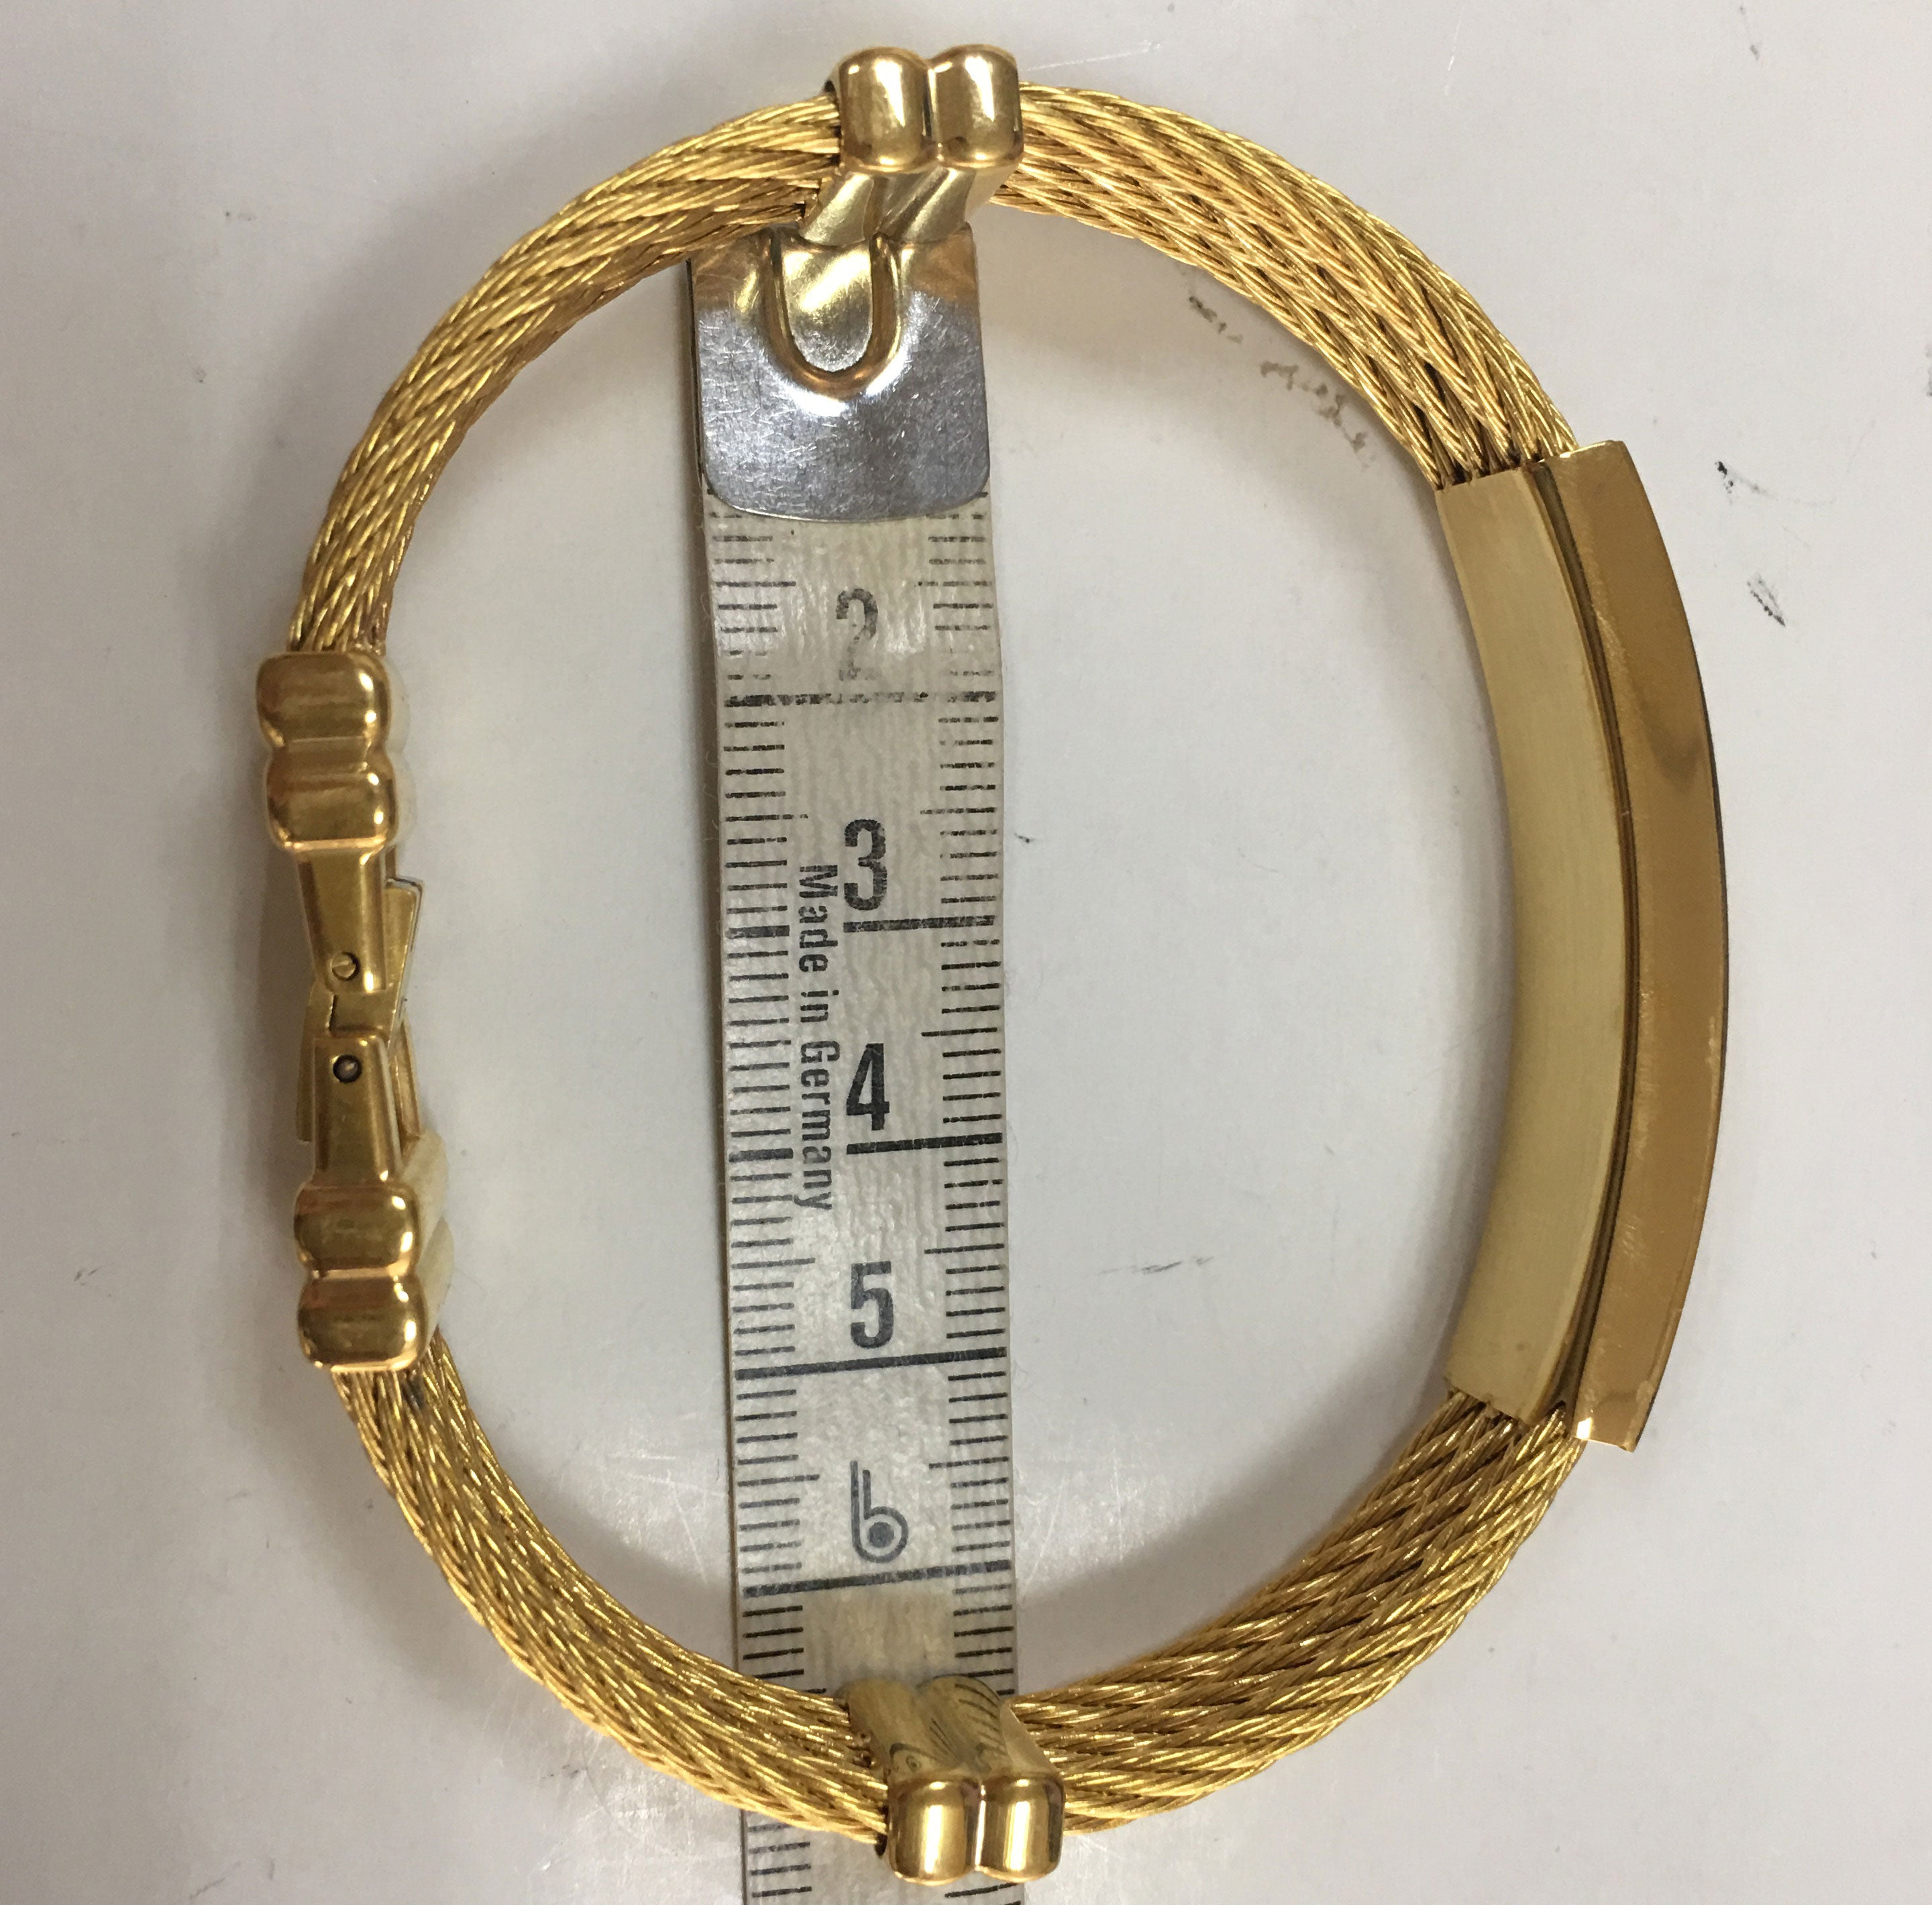 Live the Dream Gold Bracelet - Infinite Reminders